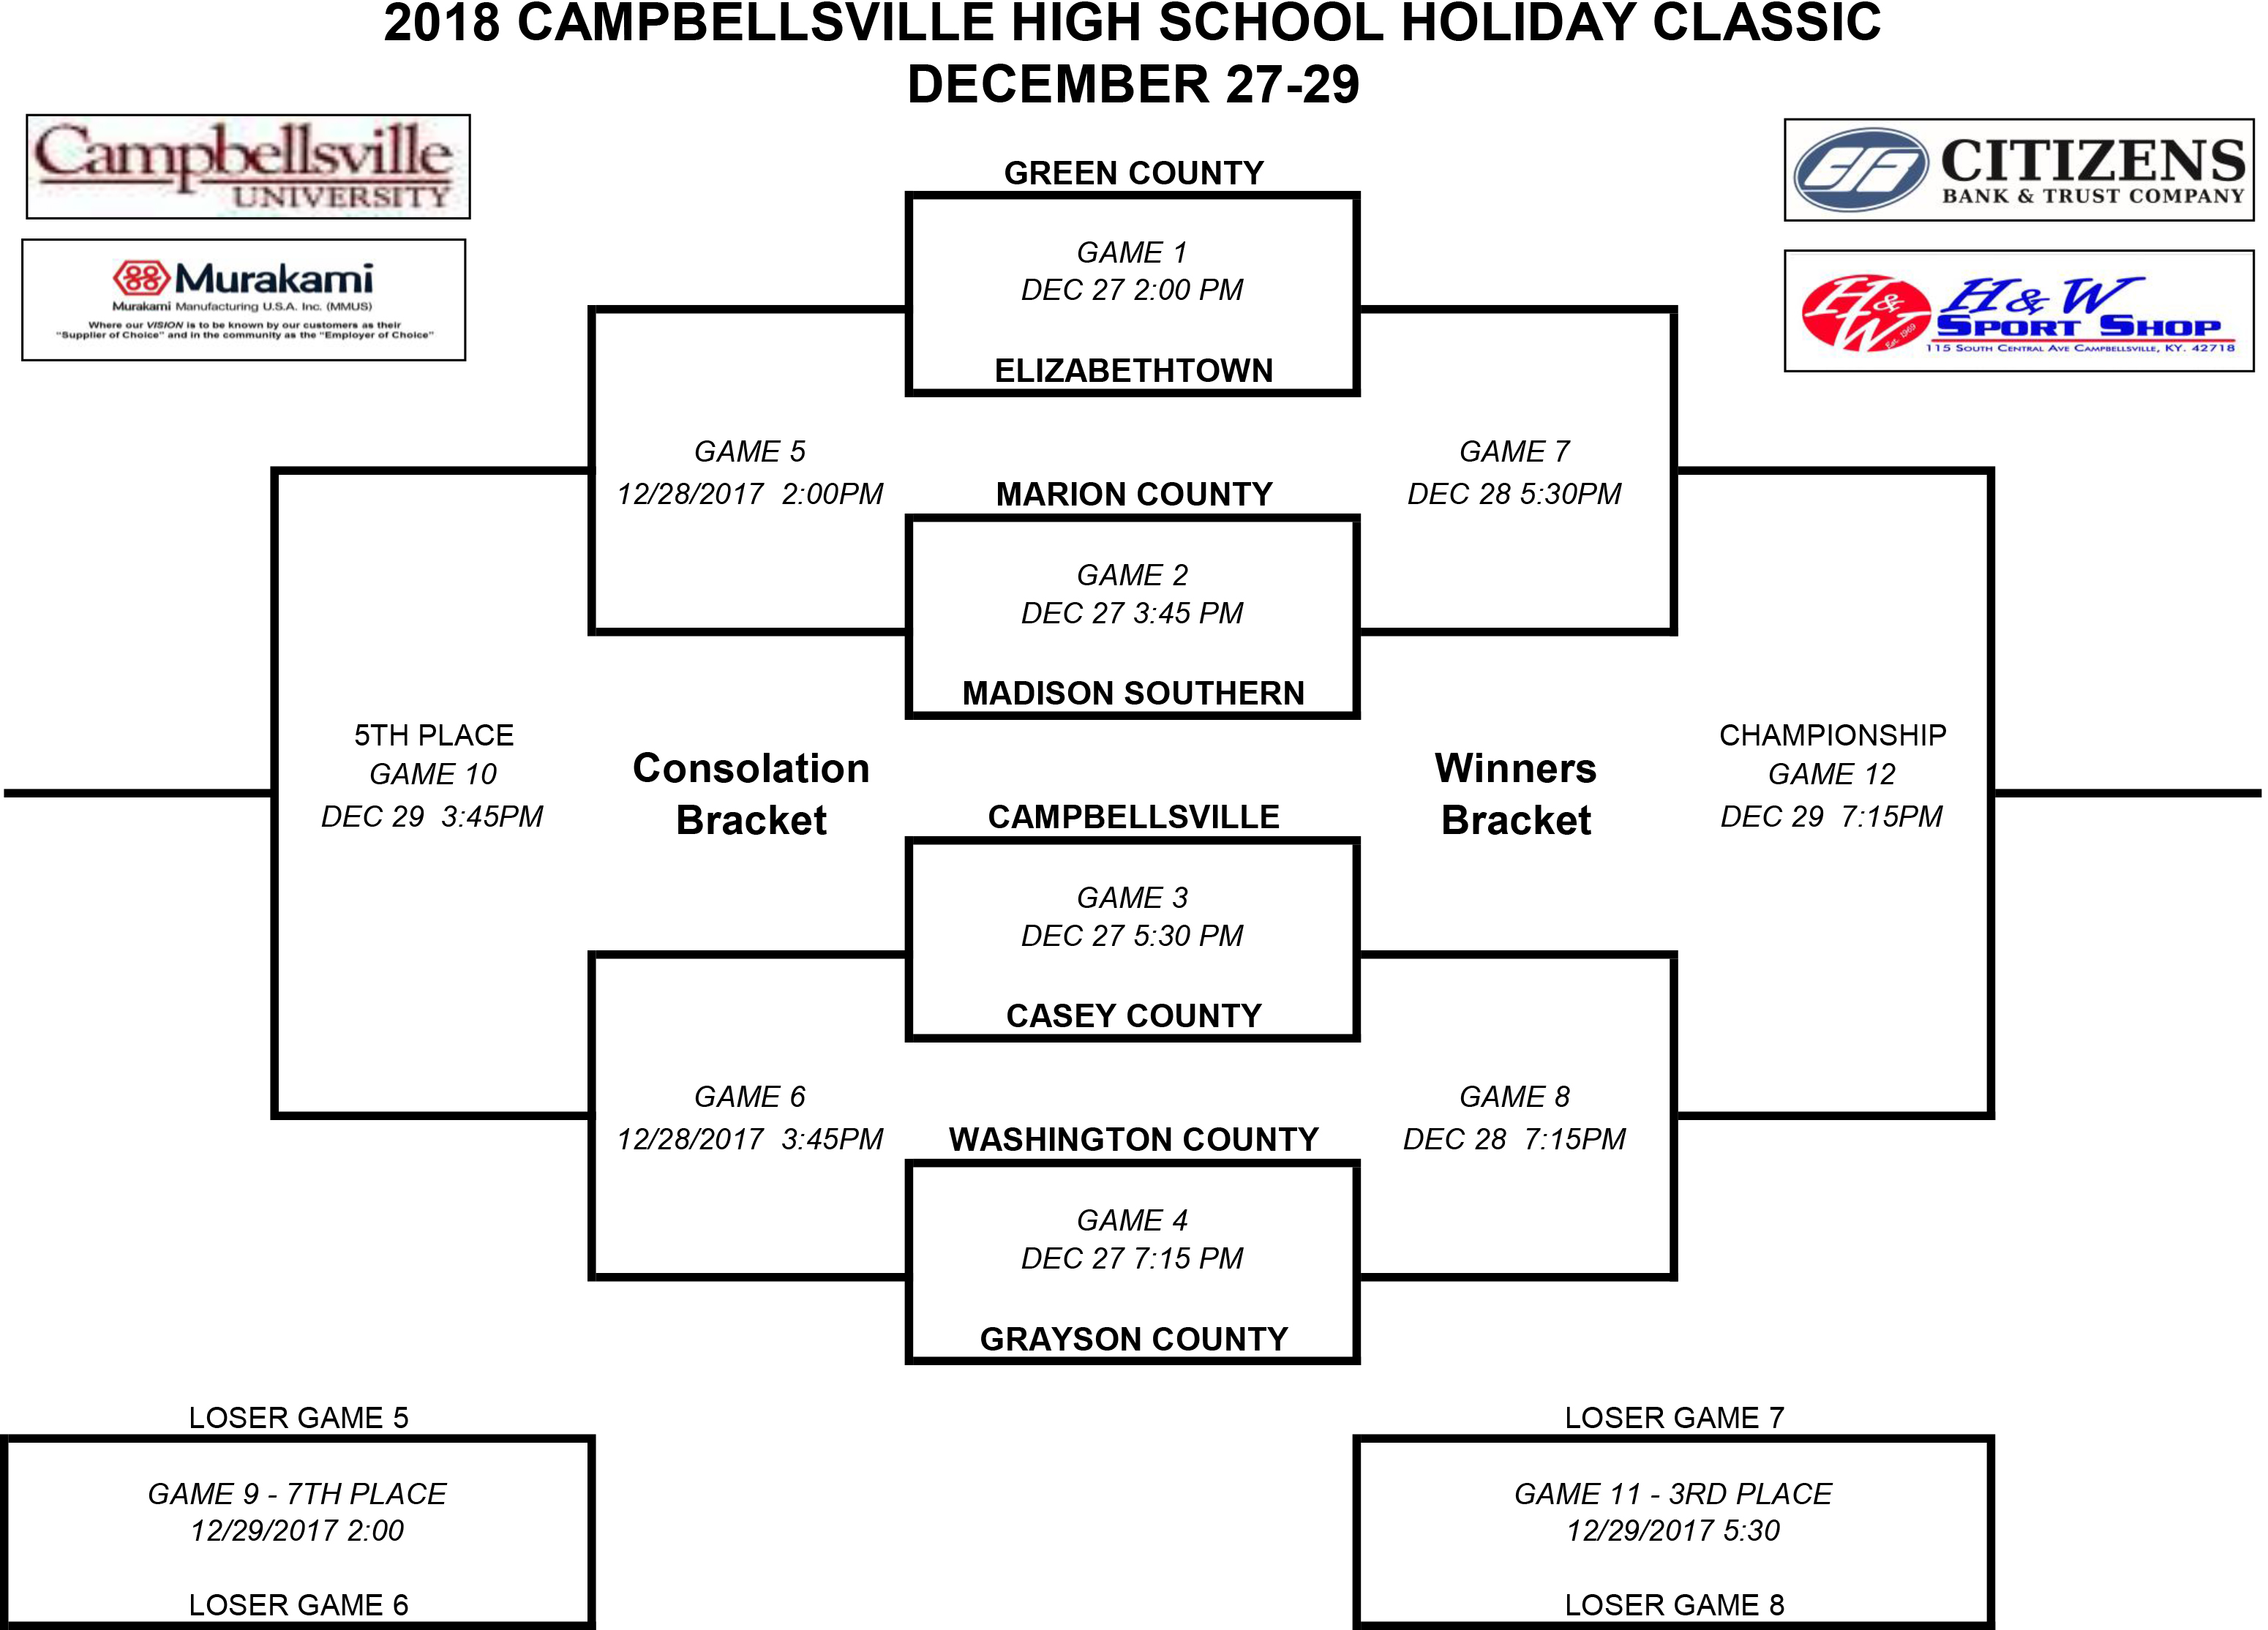 CHS BB Holiday Classic